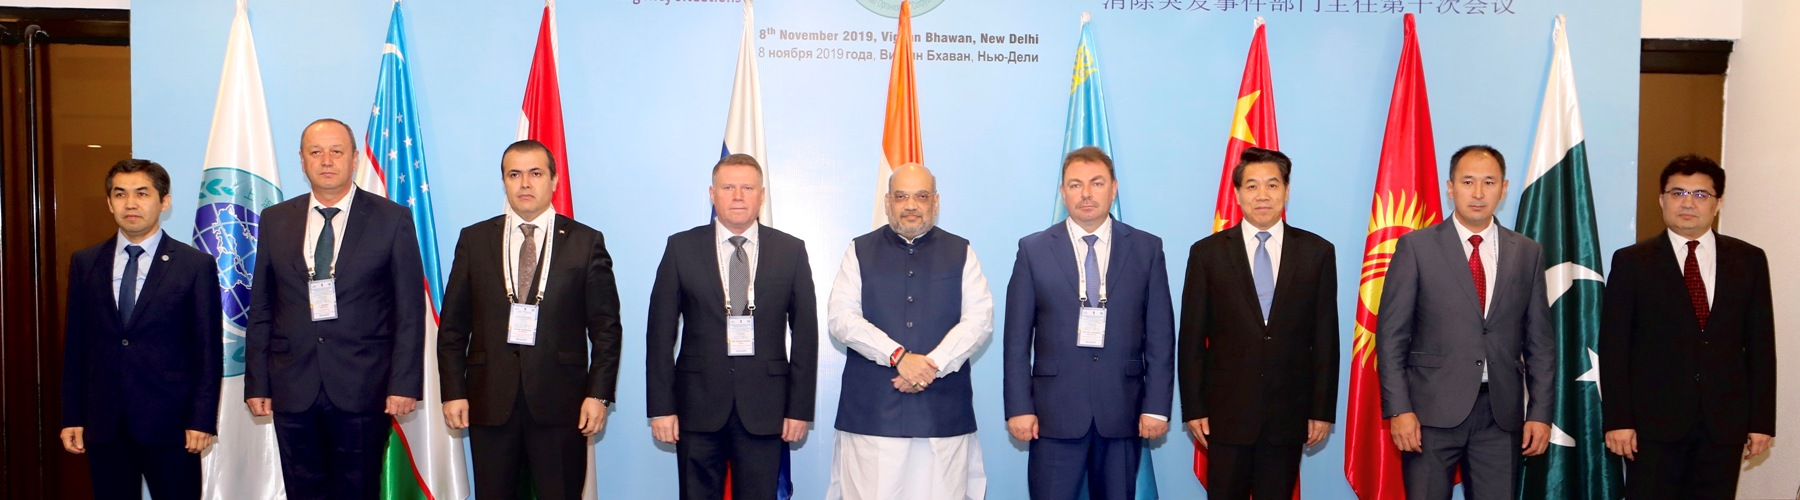 Union Home Minister Shri Amit Shah with the Heads of Departments of SCO Member States dealing with prevention and elimination of emergency situations at New Delhi on November 9, 2019